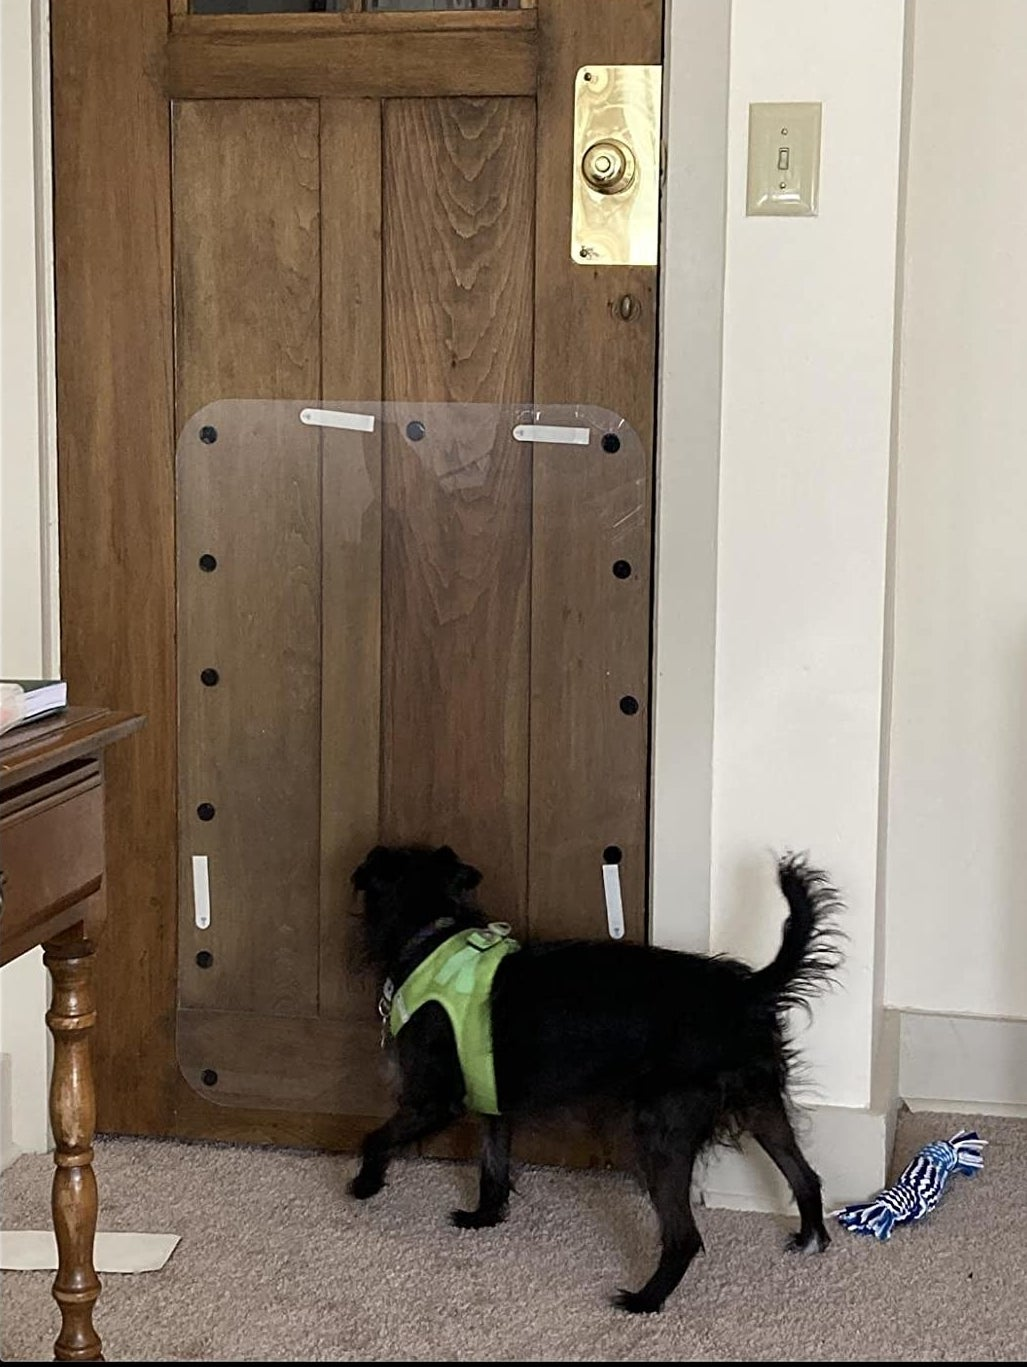 The door protector, which adheres directly to the door with stickable Velcro spots